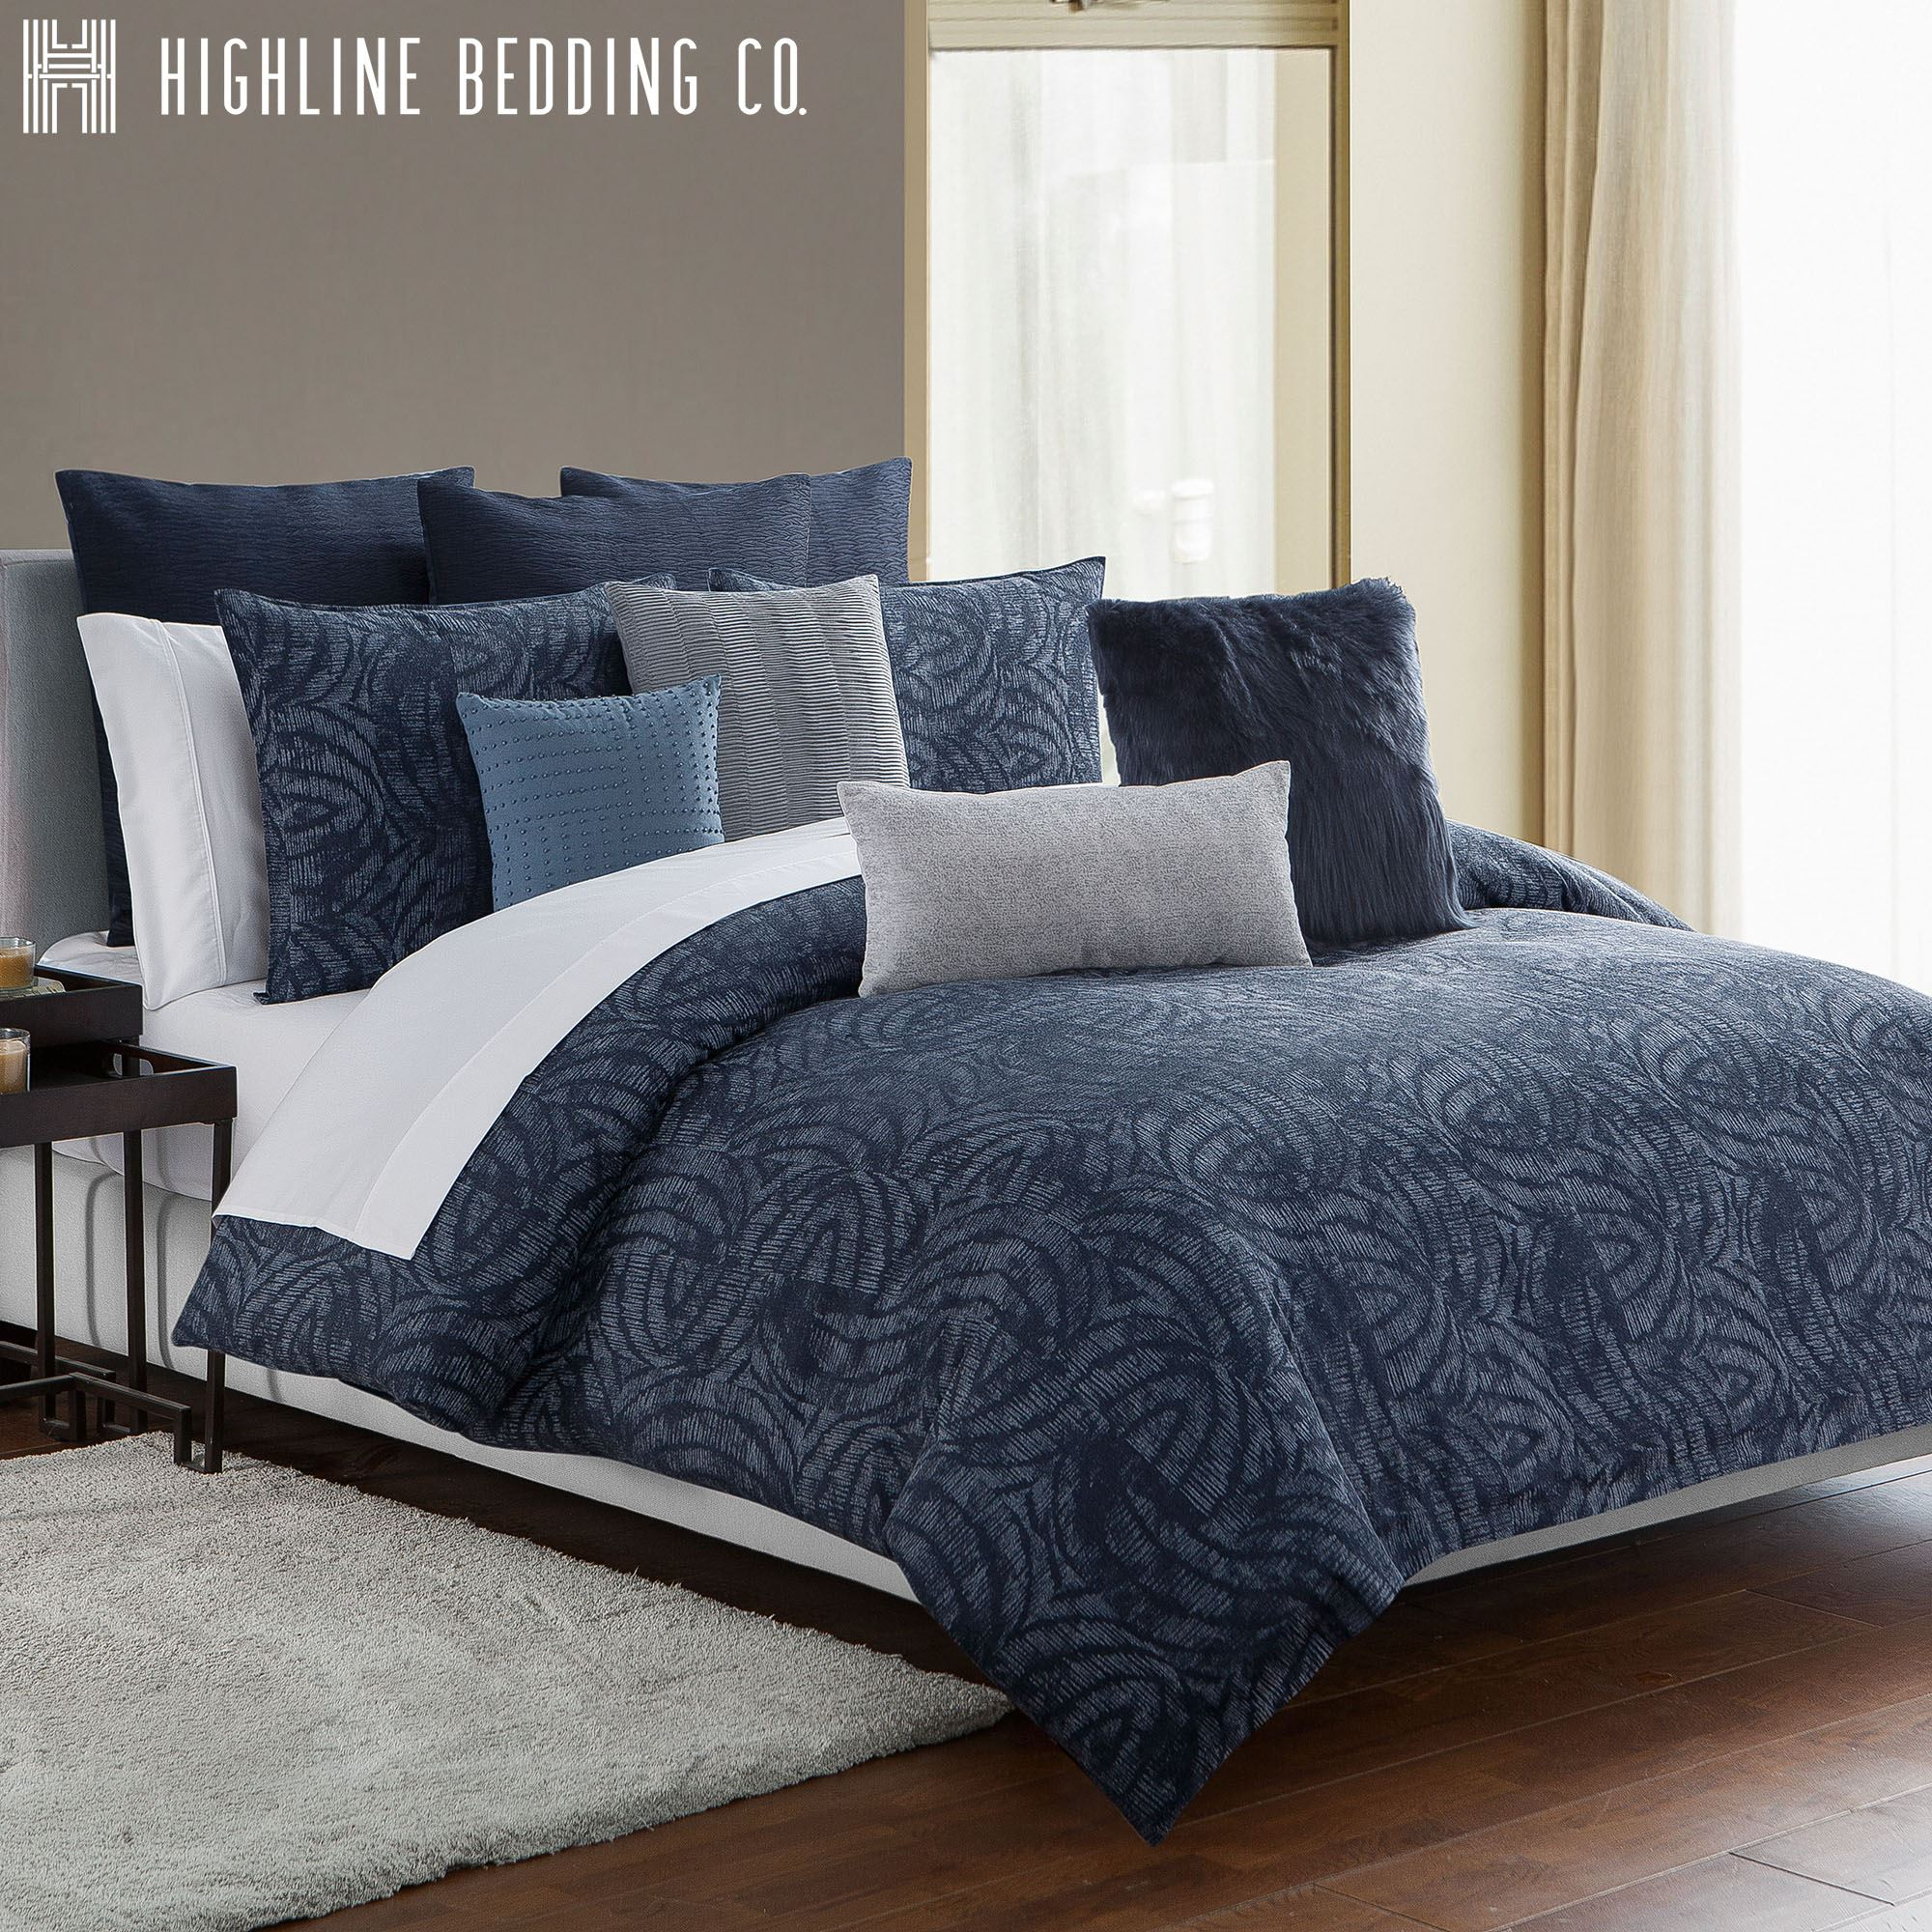 Jakarta Swirl Midnight Blue Mini Comforter Set By Highline